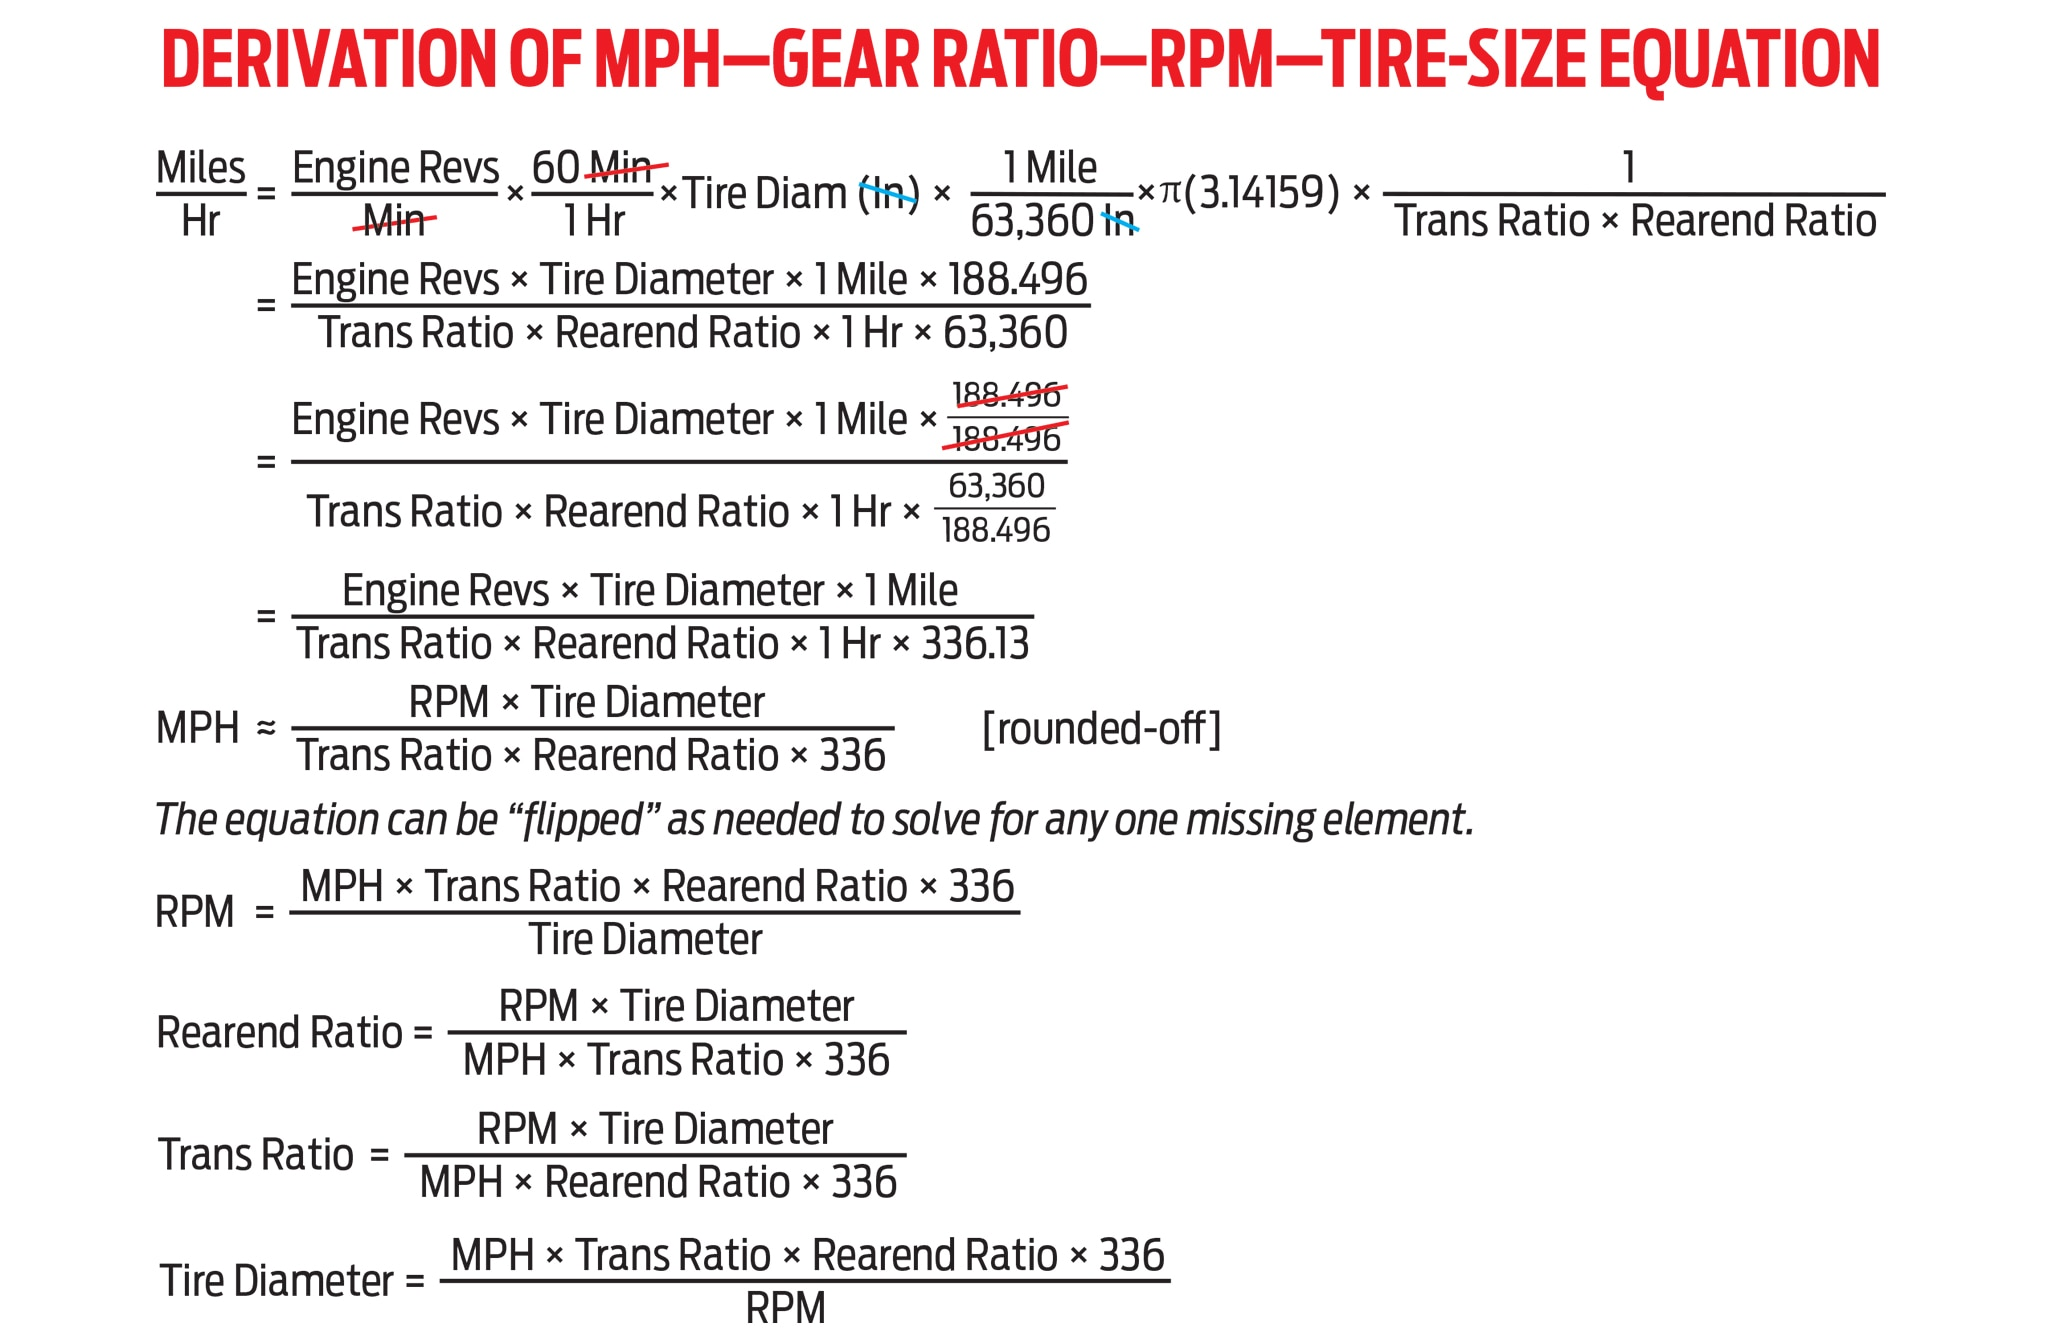 Where Does The 336 Come From In The Speed Rpm Gear Ratio